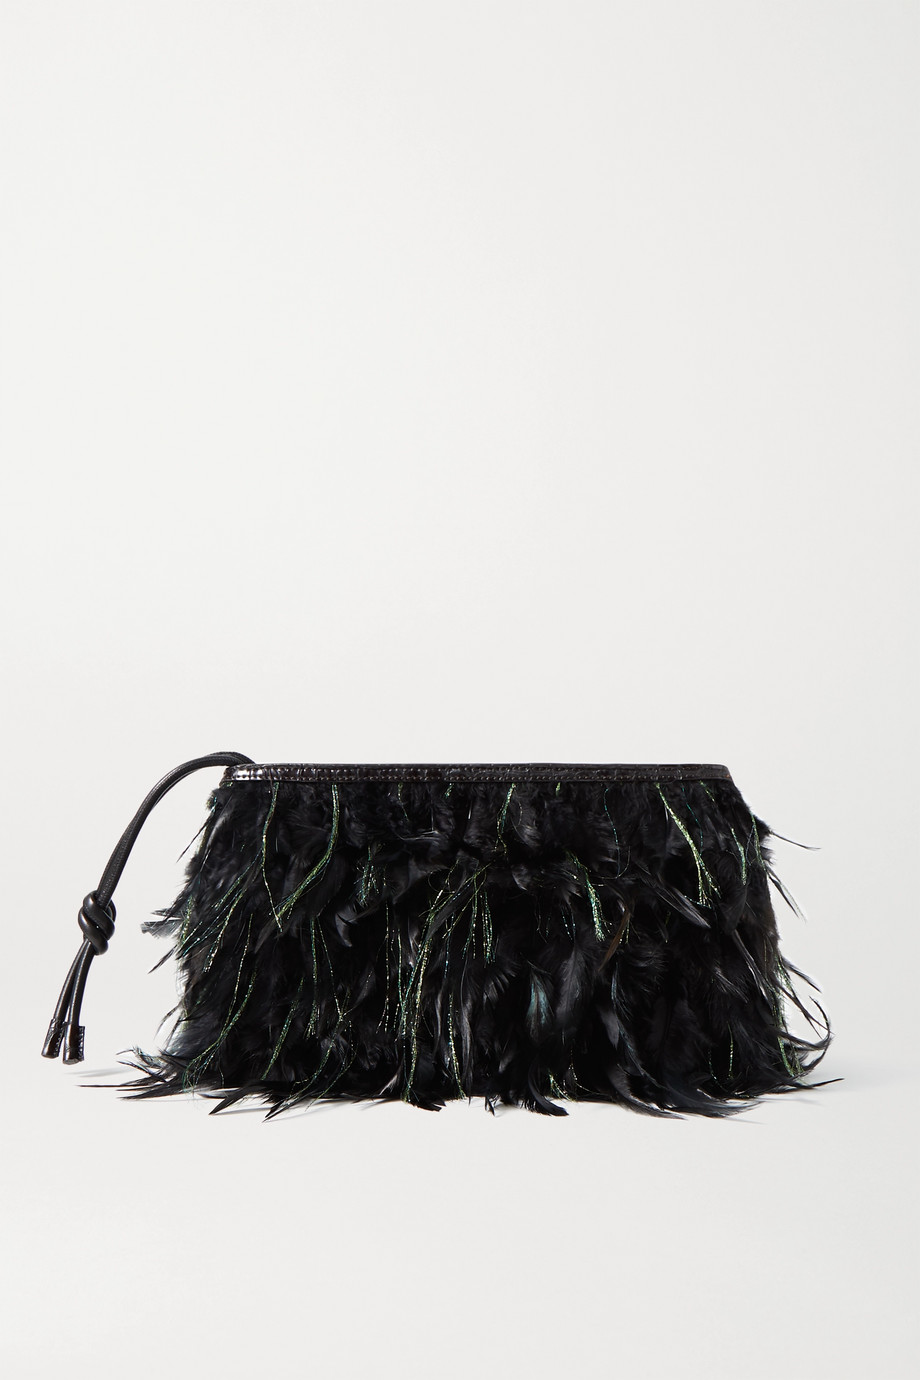 Dries Van Noten Feather-embellished croc-effect leather clutch